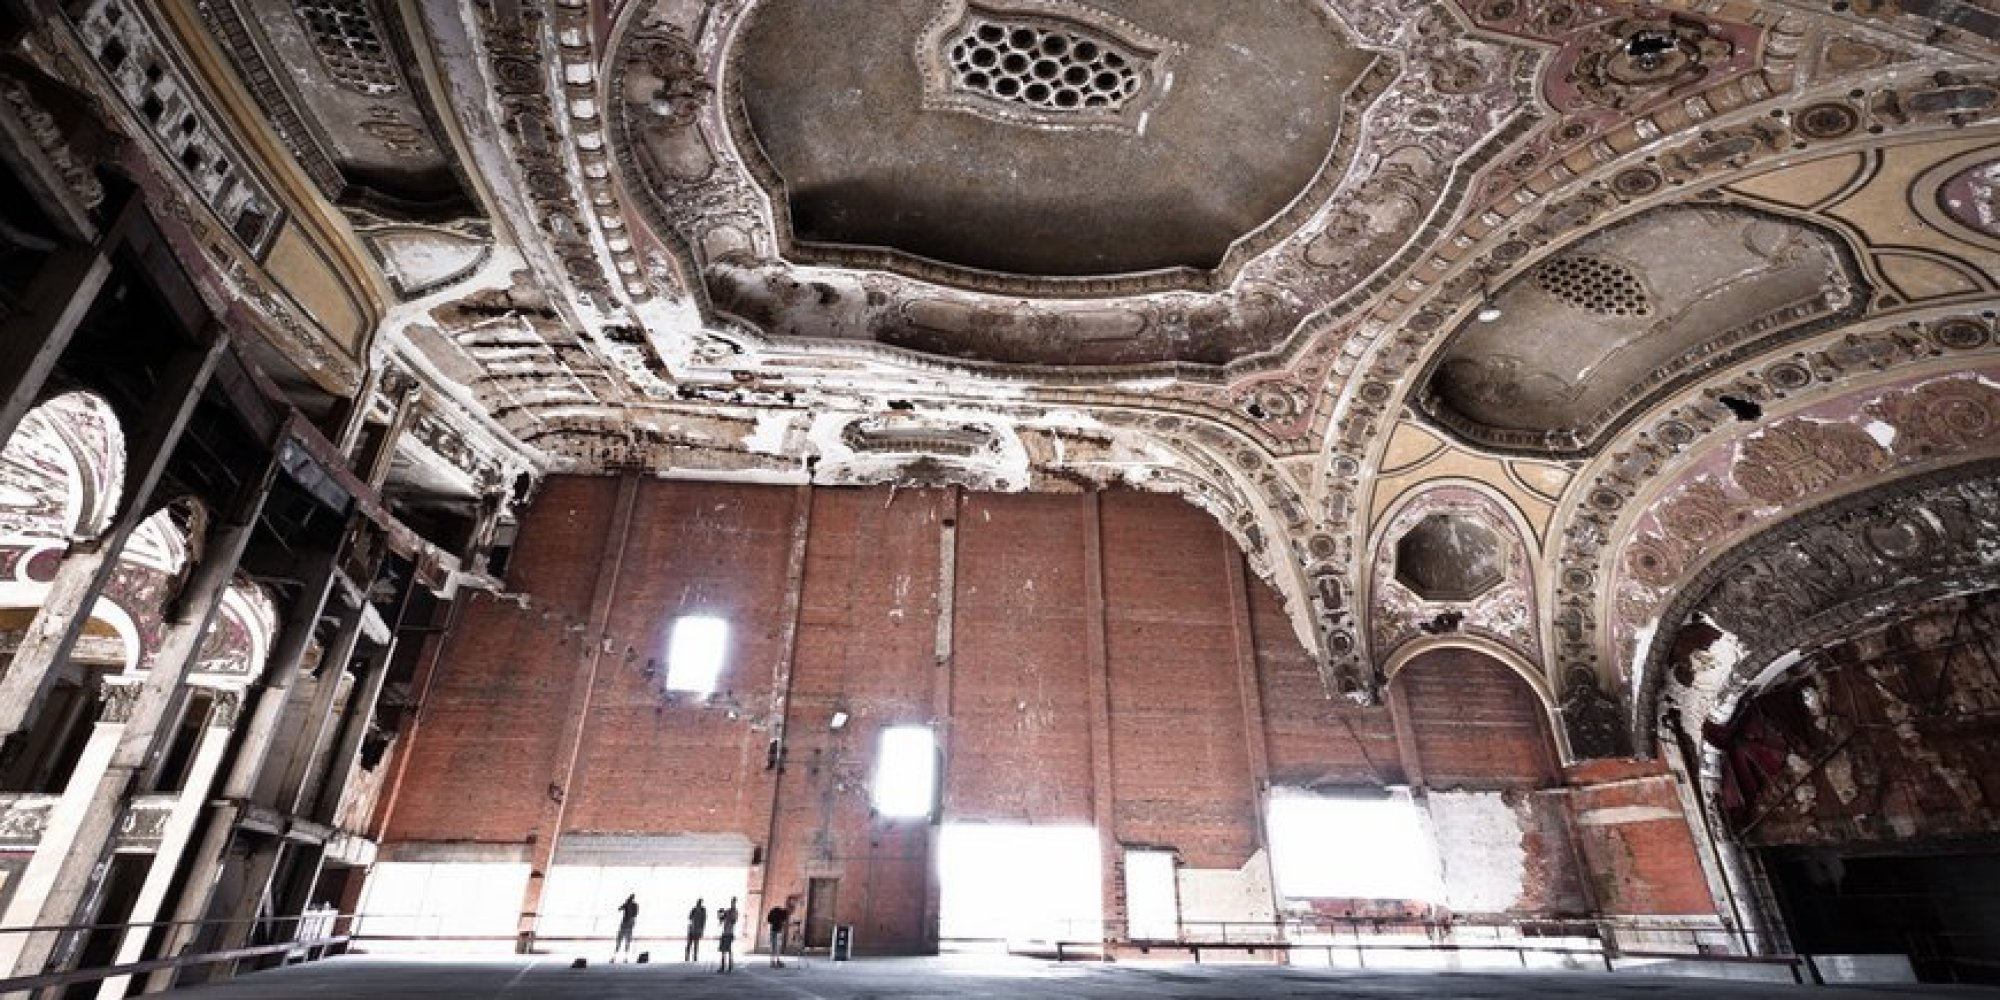 unique ideas for garages - How A Historic Movie Palace Became America s Most Unusual